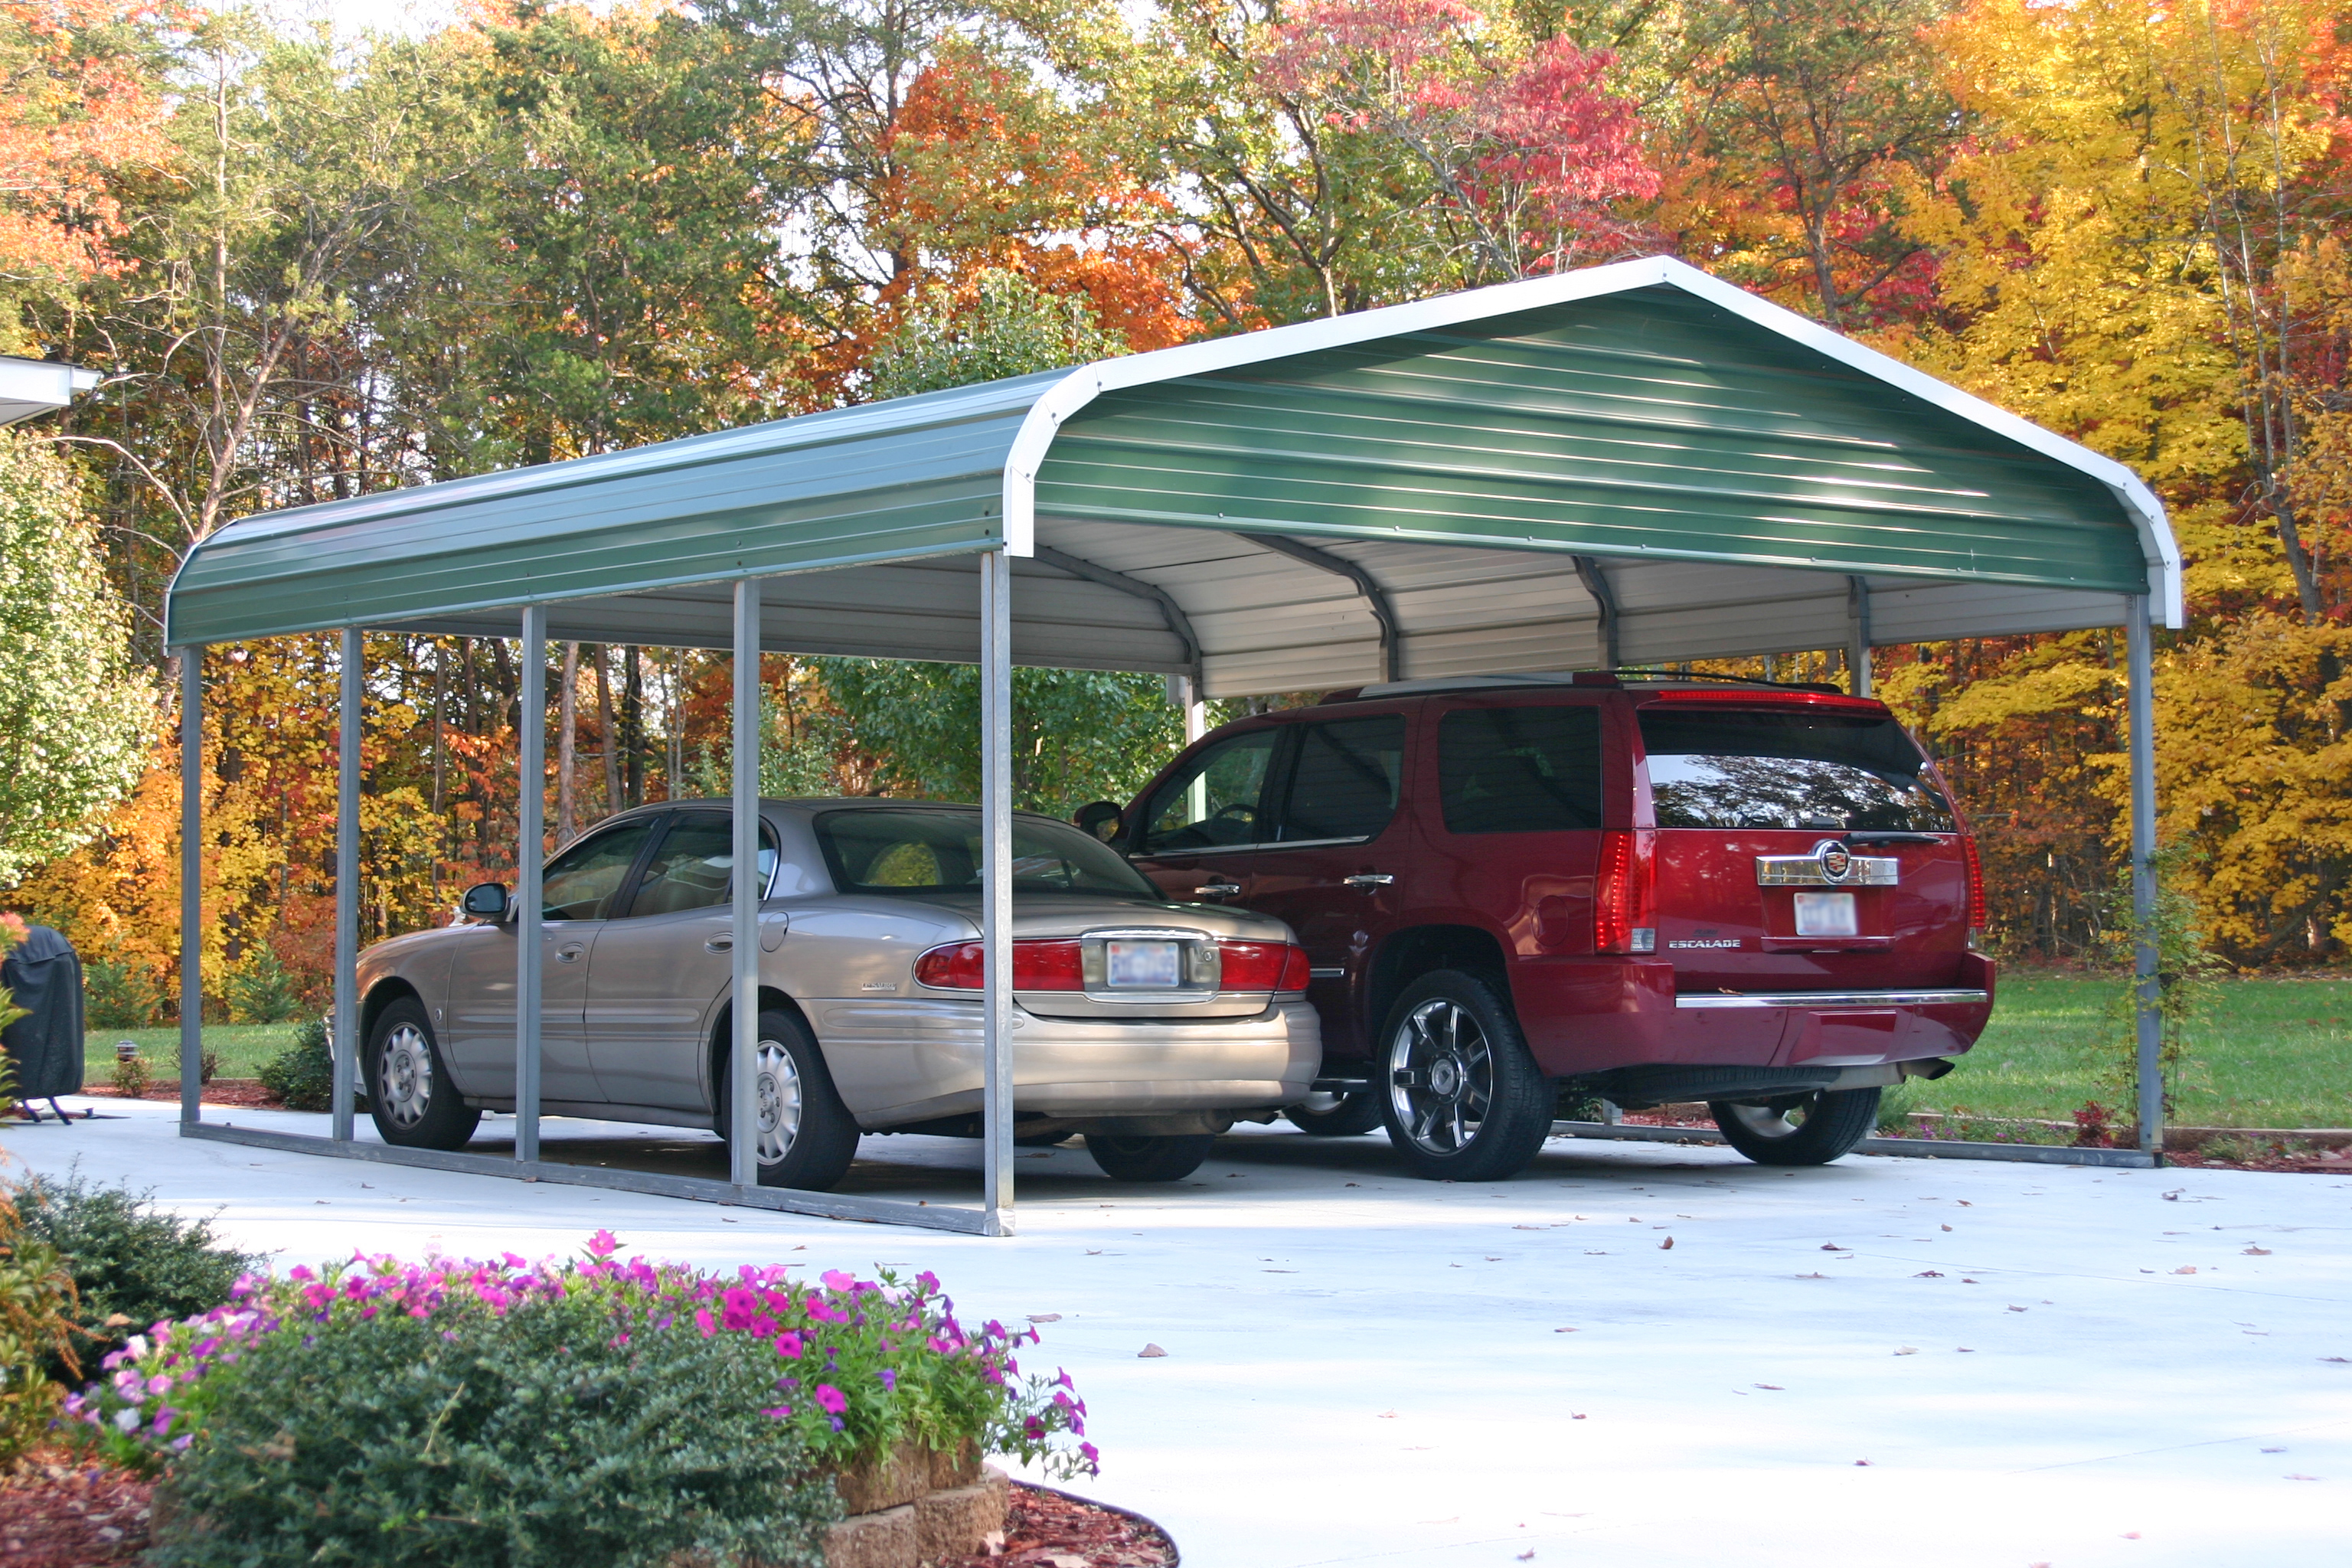 Woodworking diy carport kits PDF Free Download